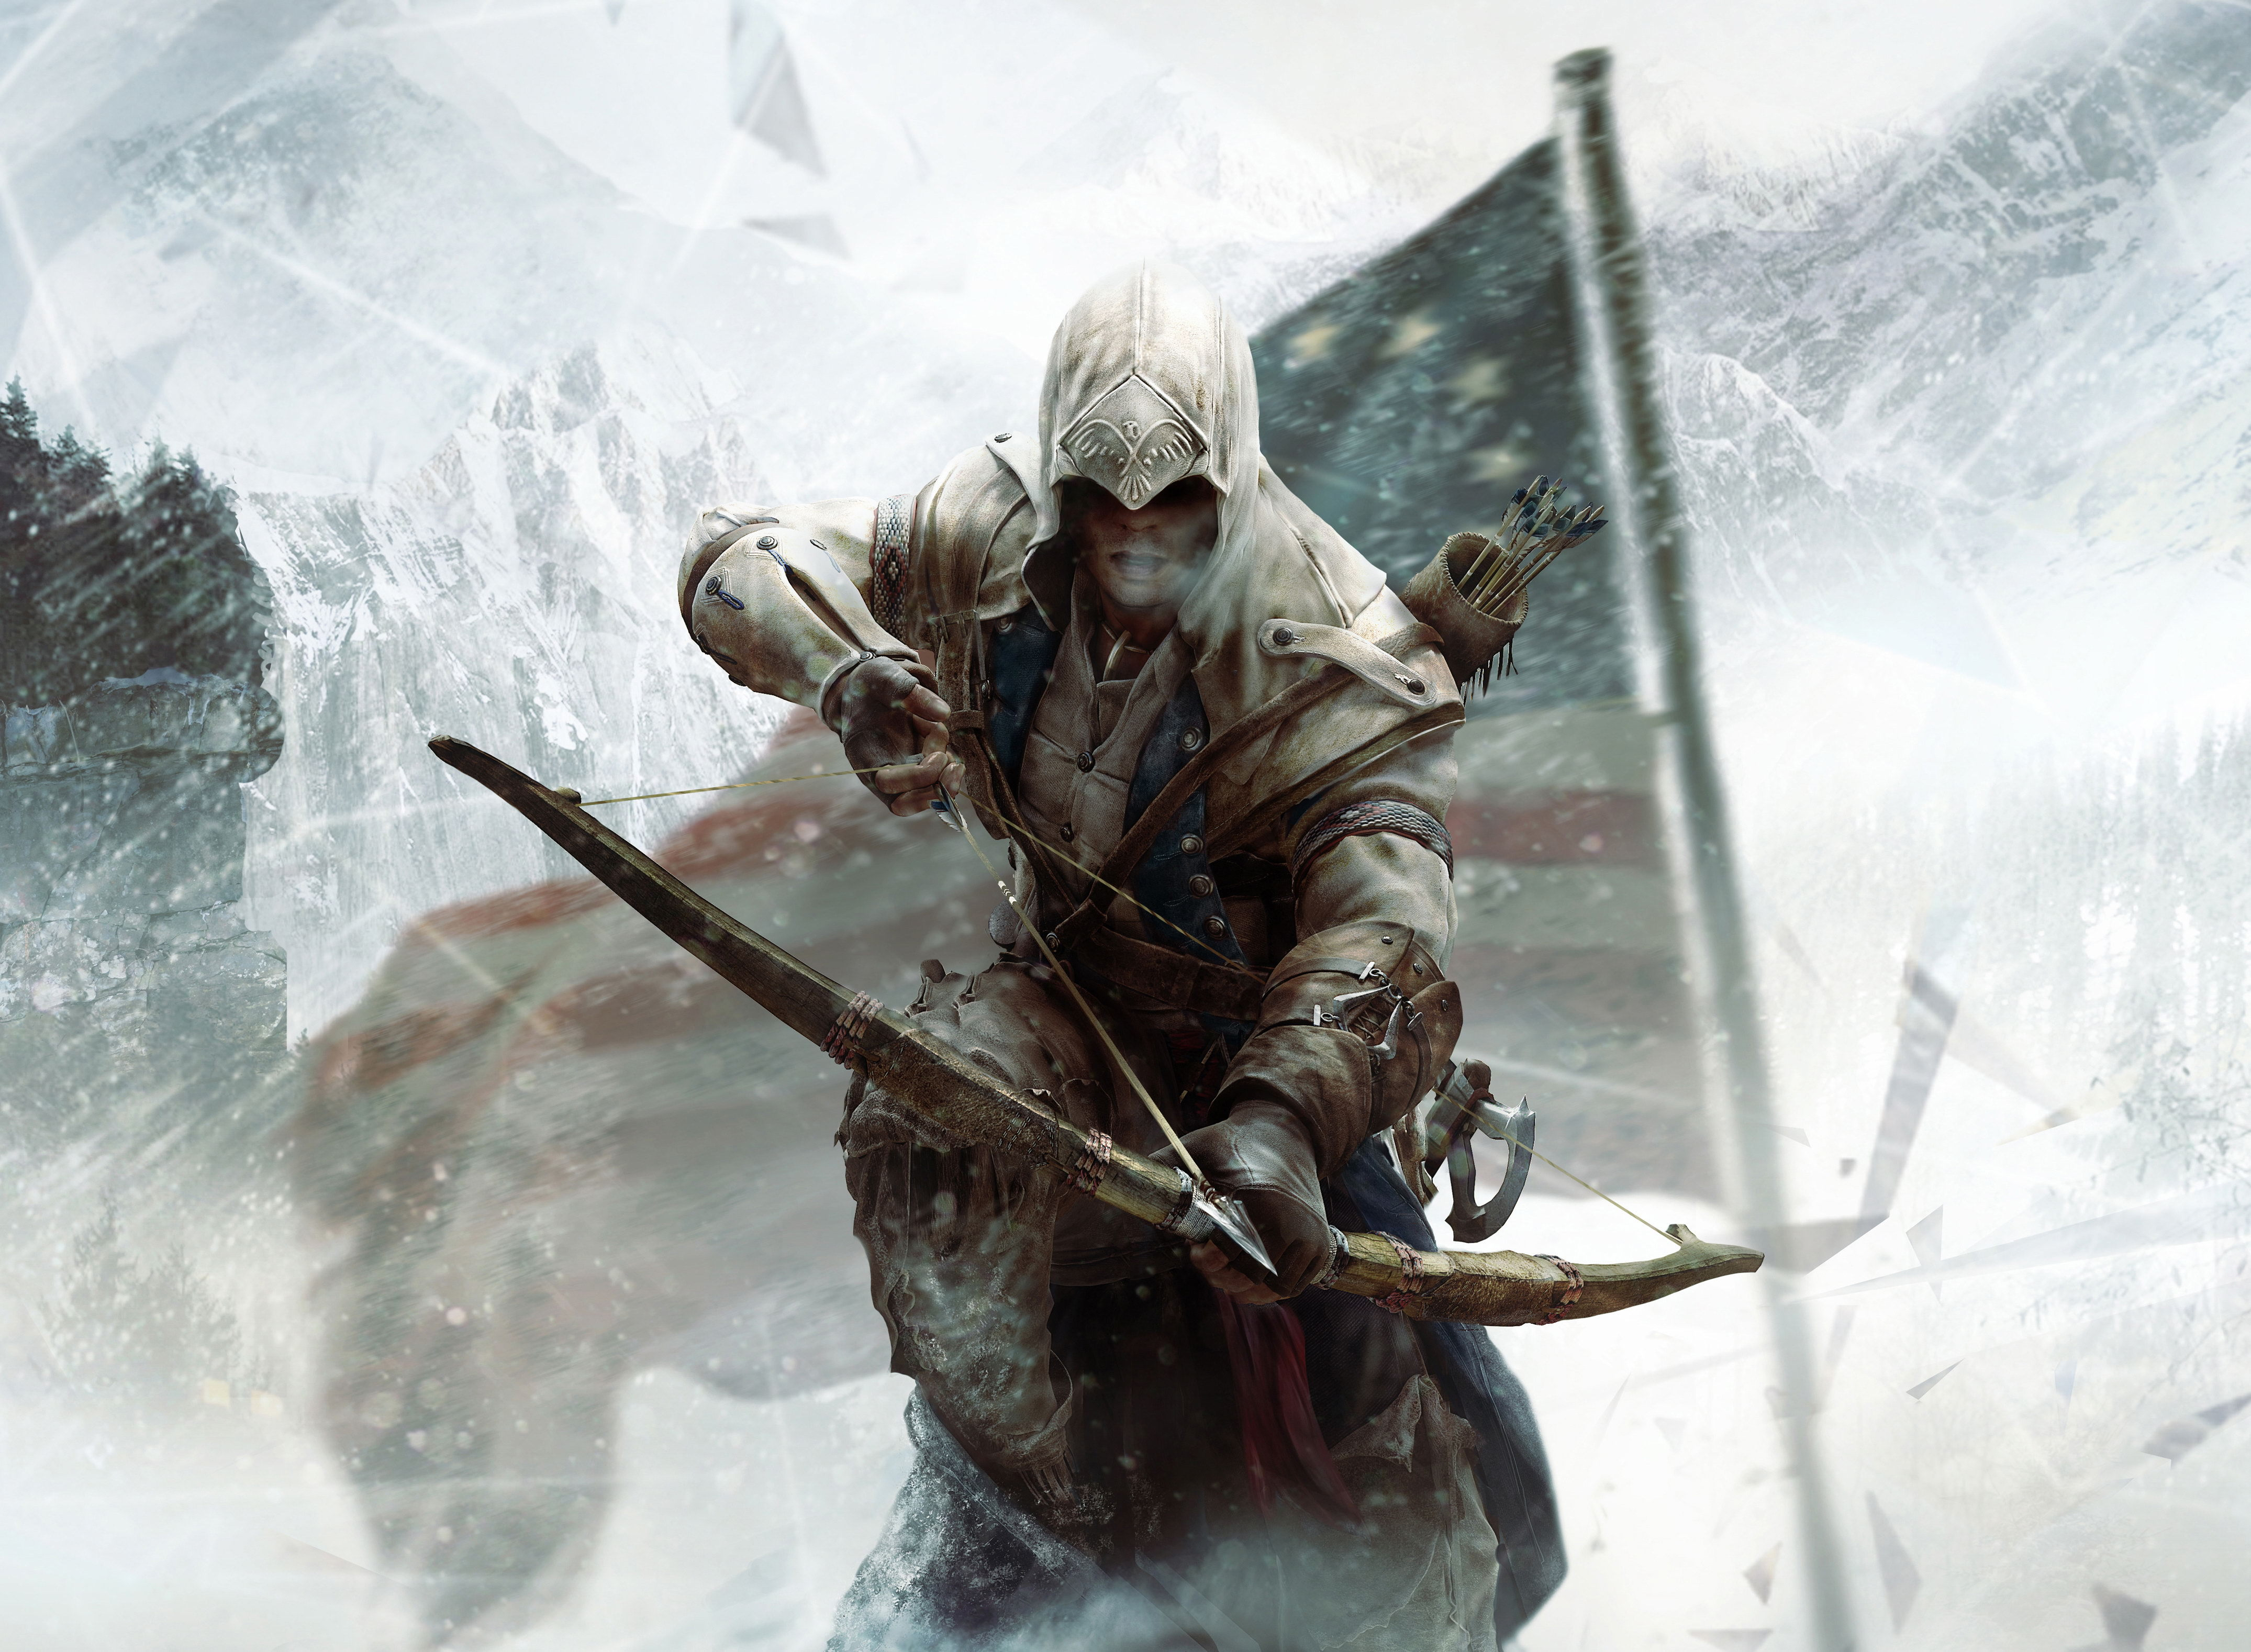 15802 download wallpaper Games, Assassin's Creed, Men screensavers and pictures for free